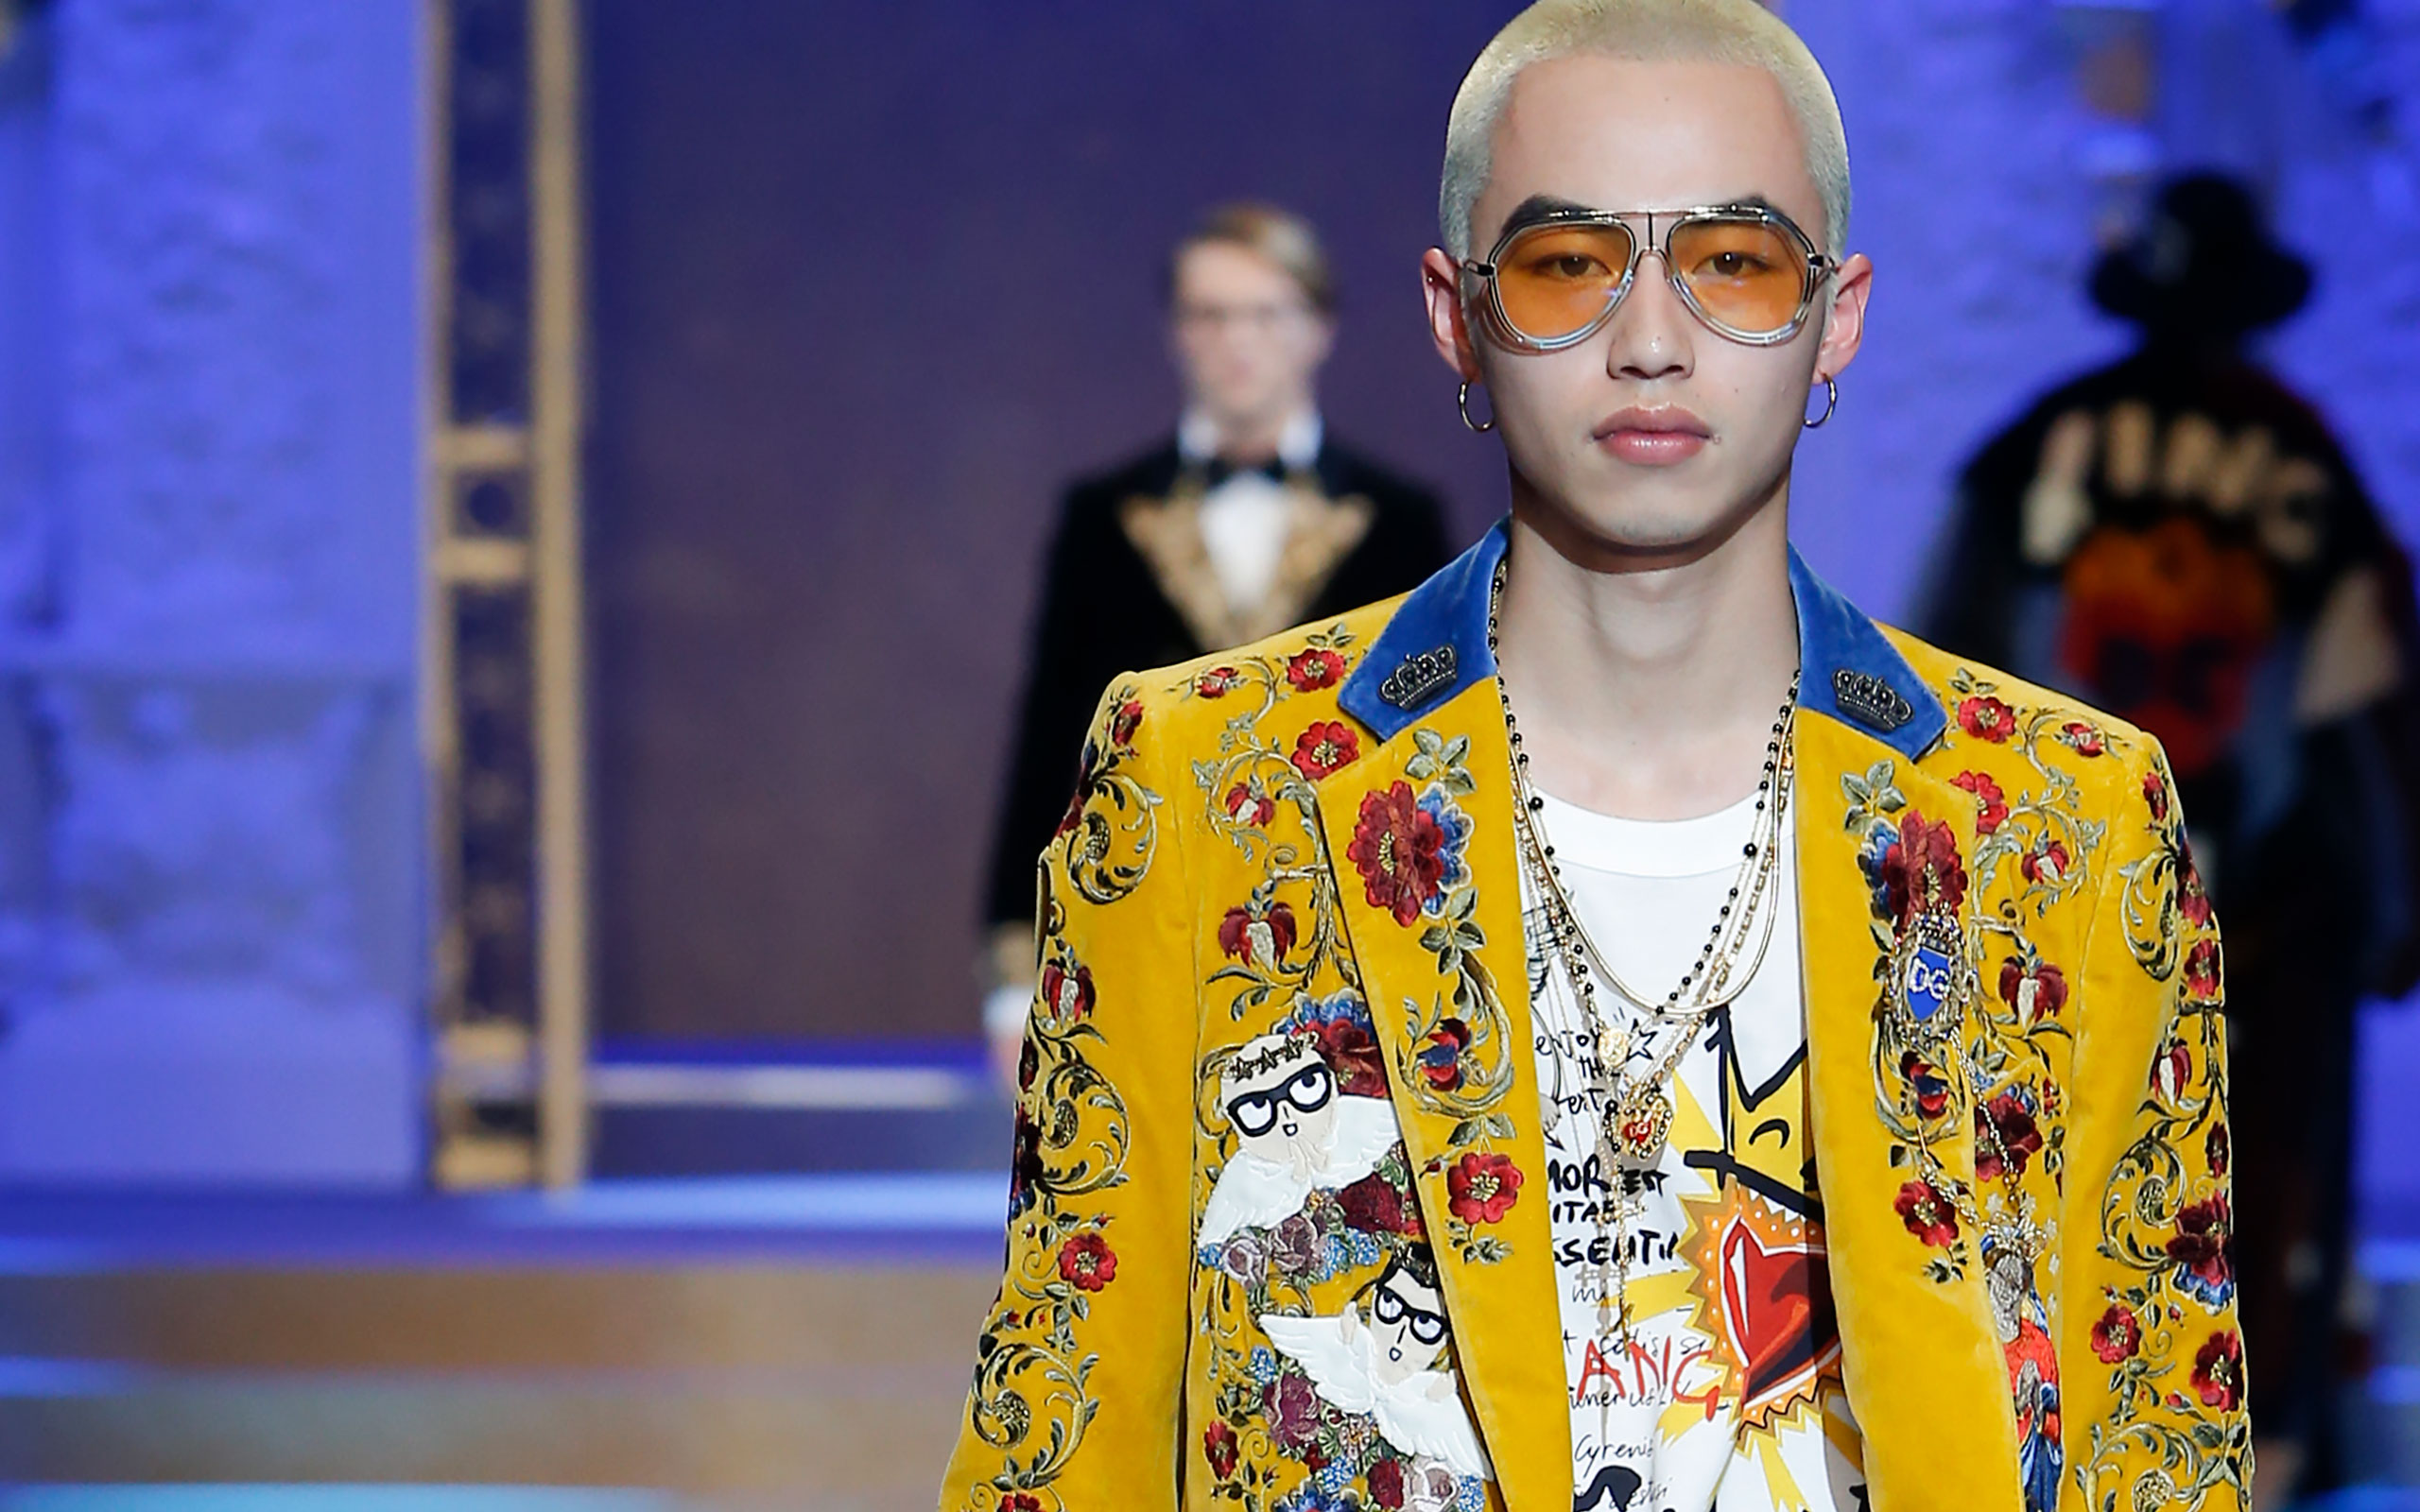 Dolce & Gabbana Presents AW 2018 Men's Collection